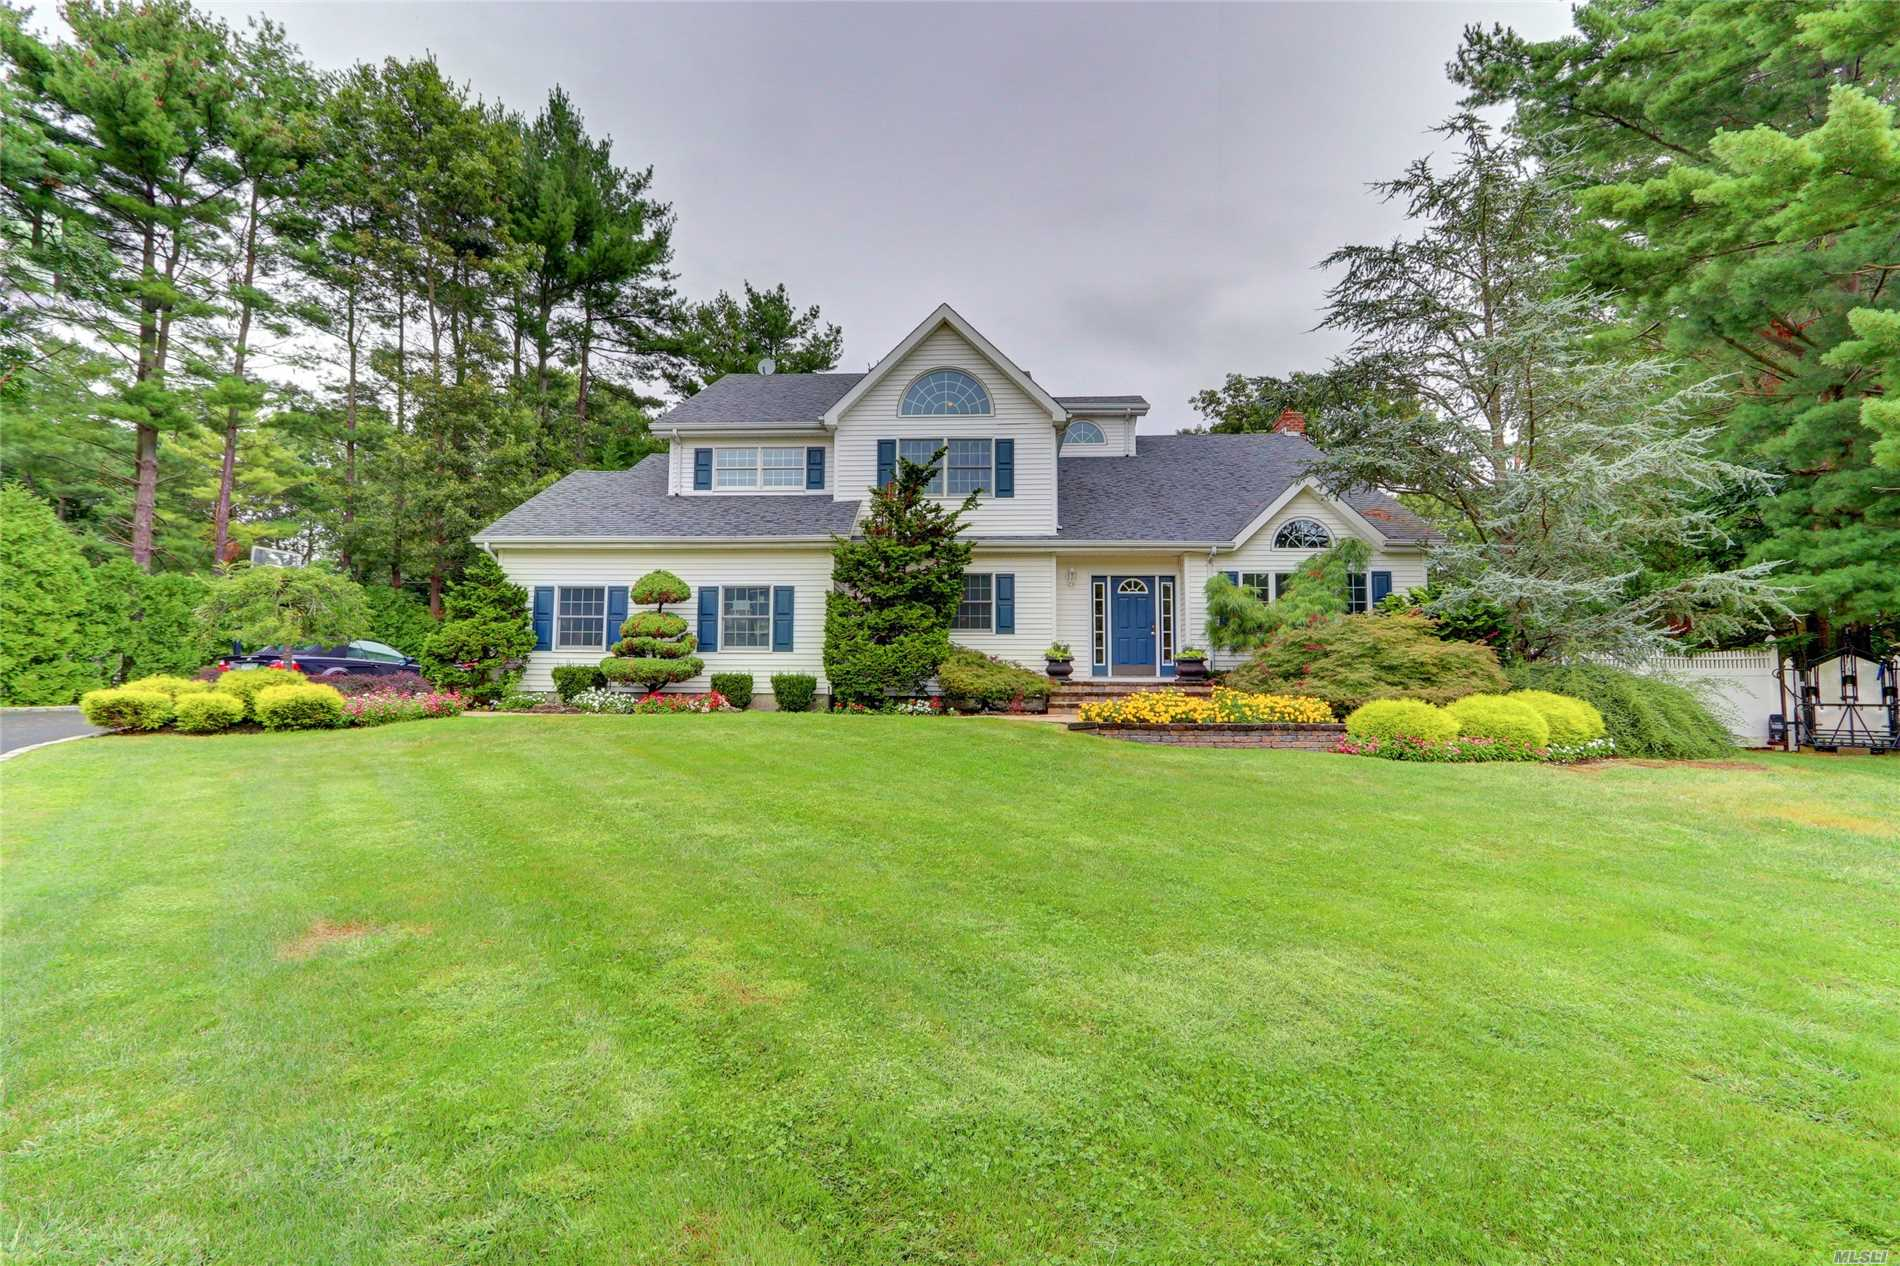 New To Market Bright & Sunny Beautiful Victorian Home Tucked Away In Quiet Culdesac, High End Updtd Designer Eik W/ Ss Appls, Island & Farm Sink Over Looking Private .50 Acre Featuring Htd. Salt Water 20X40 Igp W/Bluestone Patio, Large Trex Deck For Entertaining, , Hw Flrs, Cac, Crown Mldgs Throughout, Palladium Windows, Master Suite W/Wic & Large Ba,  Side Entry Garage. Too Much To List Come & See - Won't Last!!!!